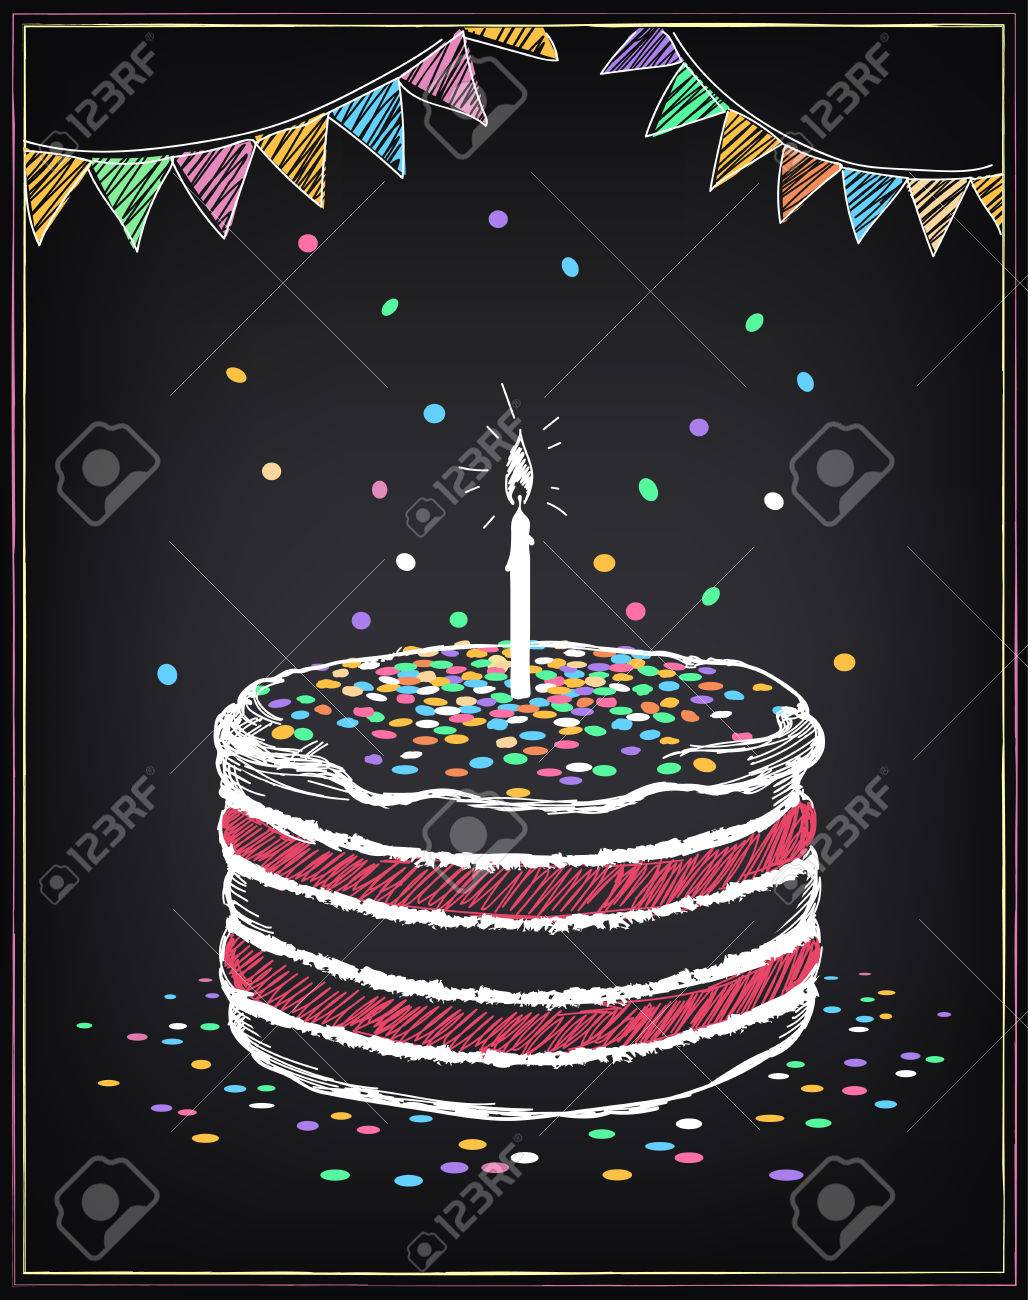 Birthday cake with candle. Festive decorations and confetti. Freehand drawing with imitation of chalk sketch - 50571517